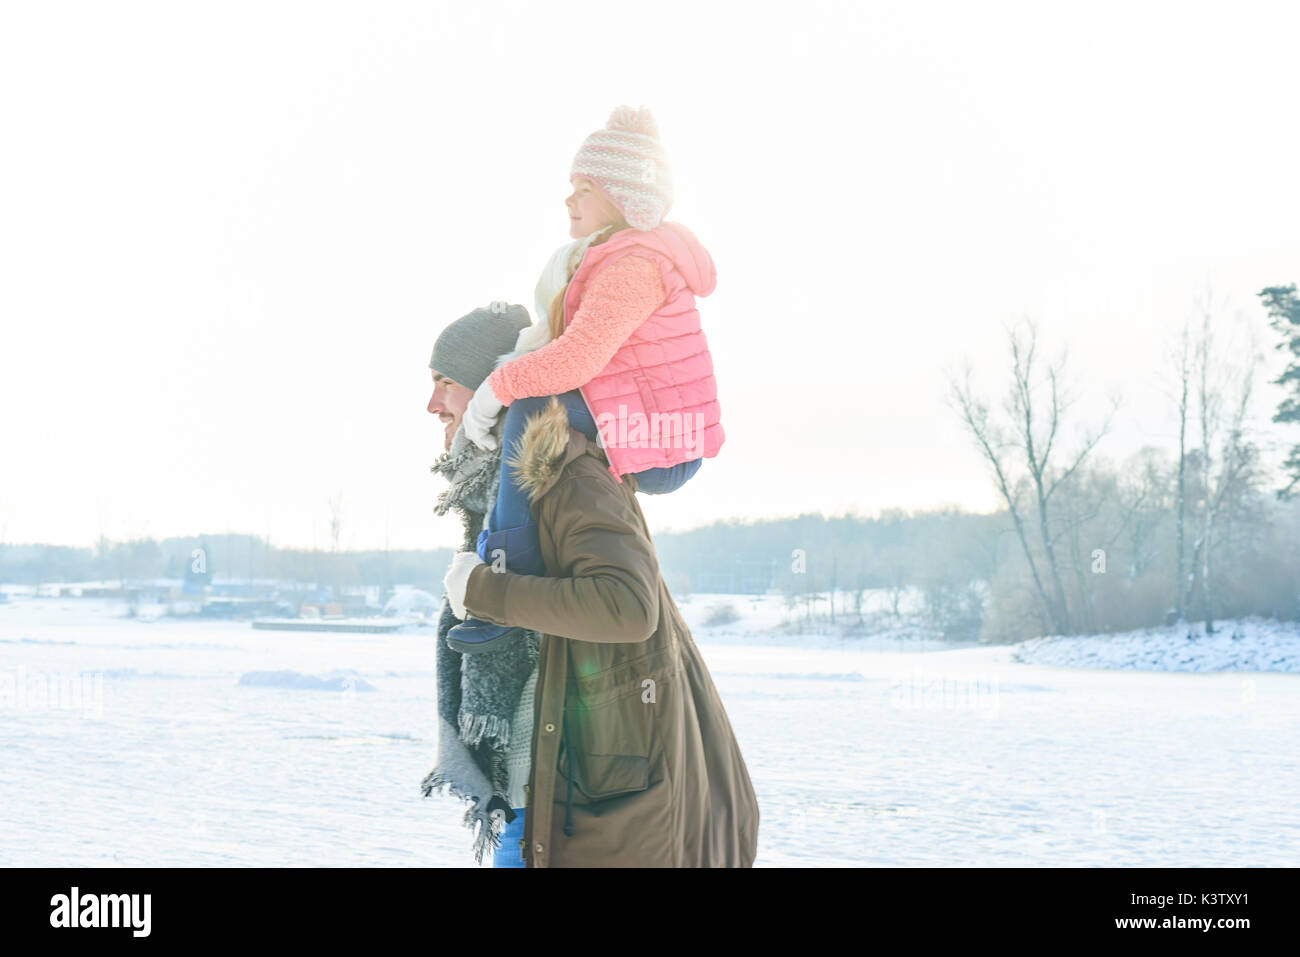 Father with child in winter giving her a piggyback ride - Stock Image